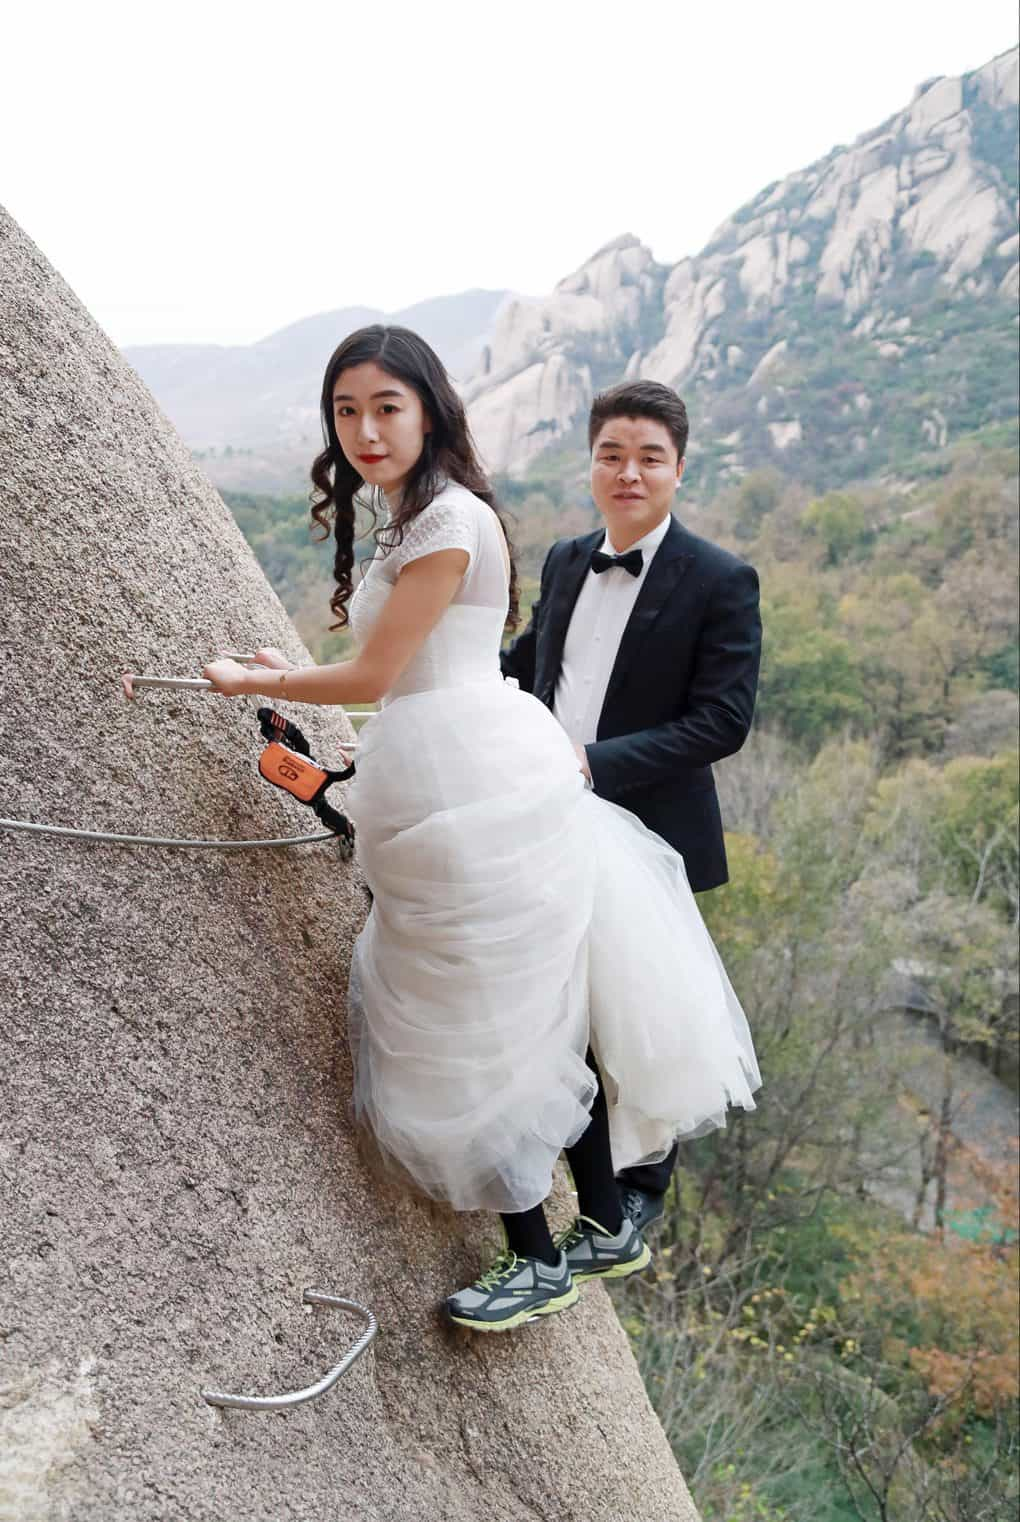 The newlywed Chinese couple defied traditional photos for something truly unforgettable